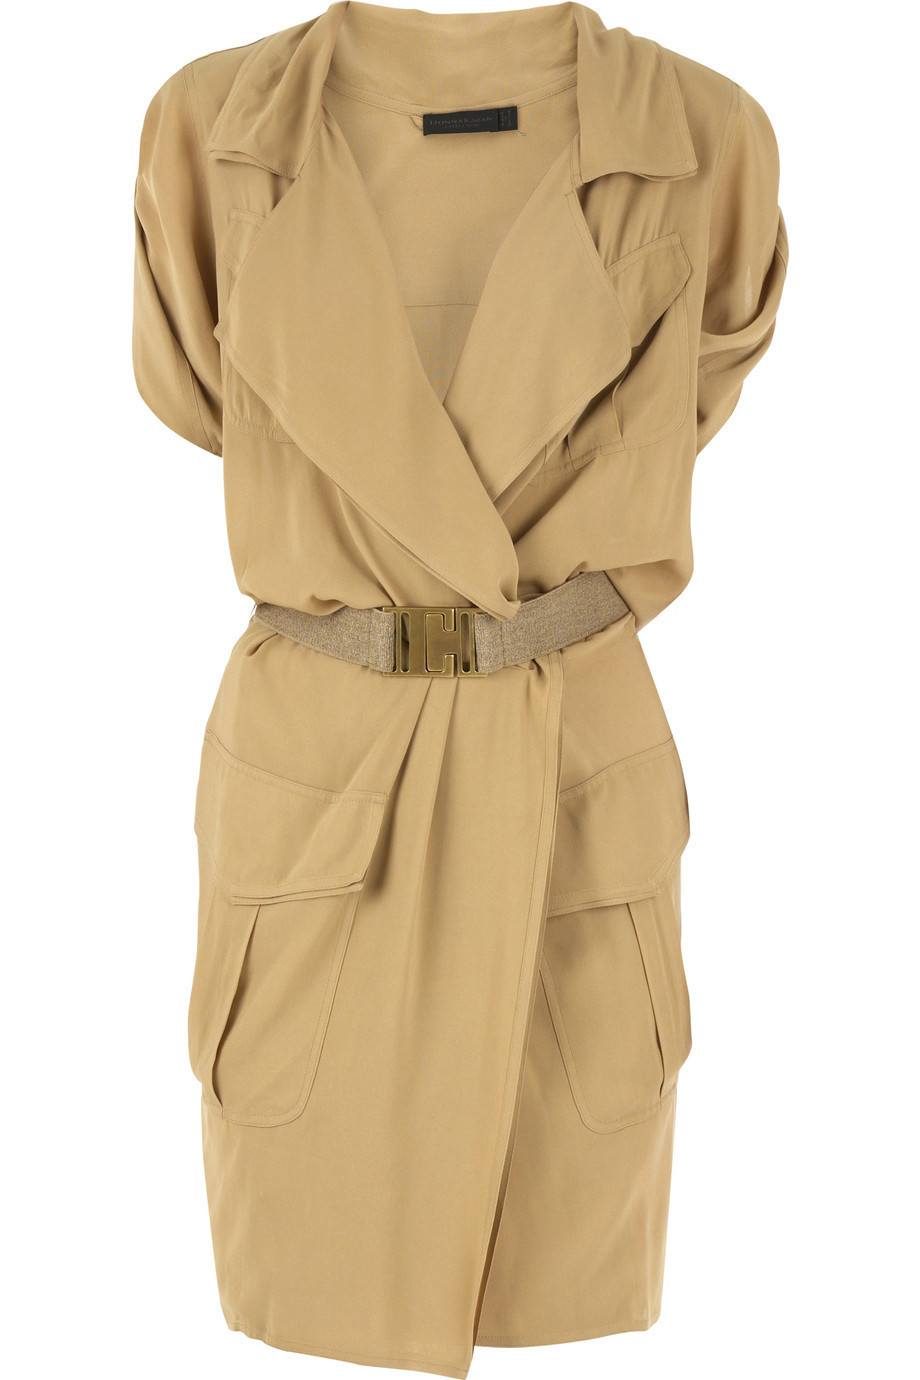 Donna Karan Silk shirt dress | NET-A-PORTER.COM from net-a-porter.com